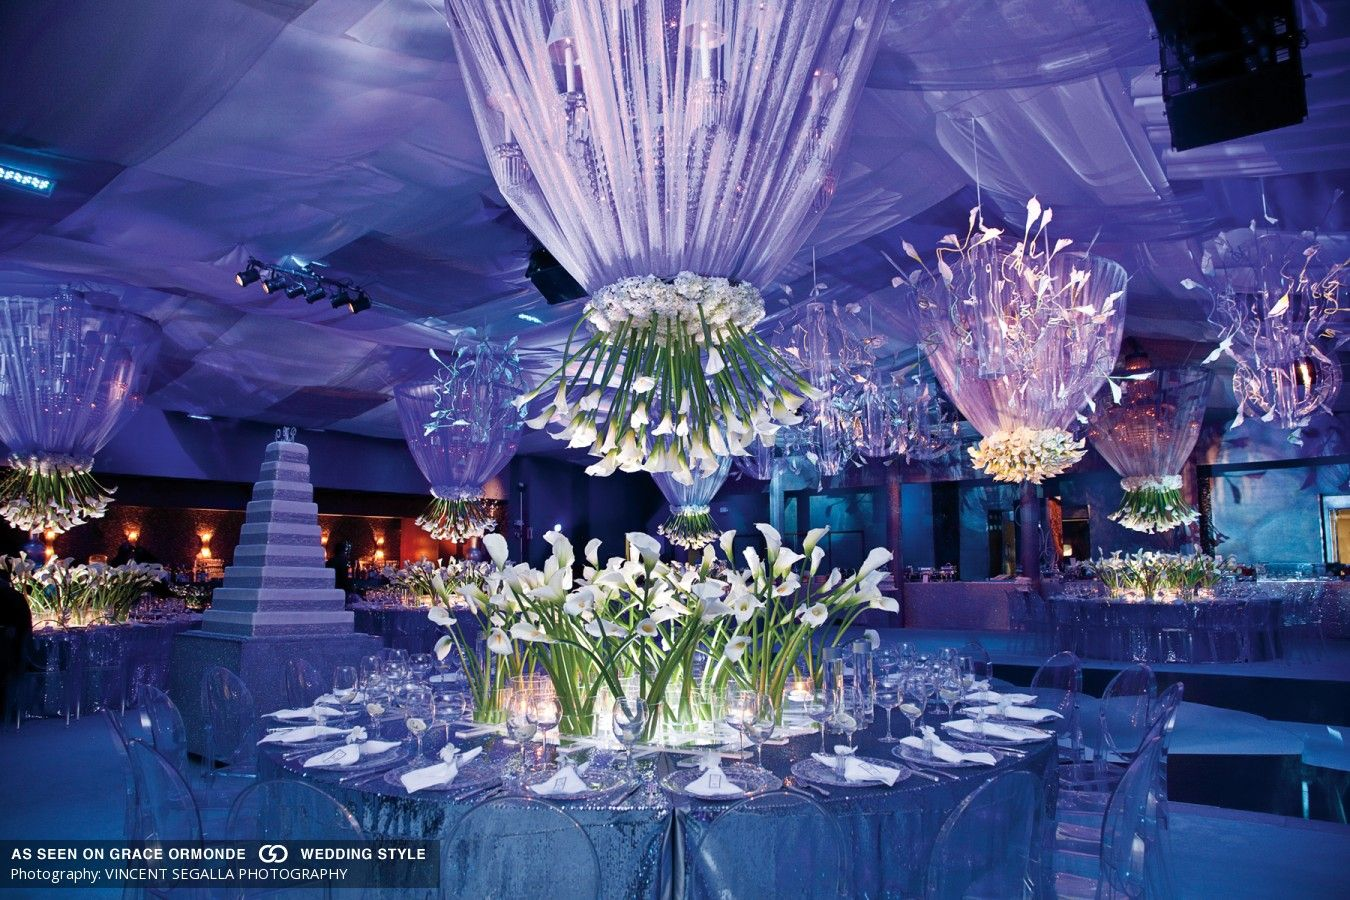 Light blue wedding decoration ideas  Wedding planning wedding dresses honeymoon wedding style  light